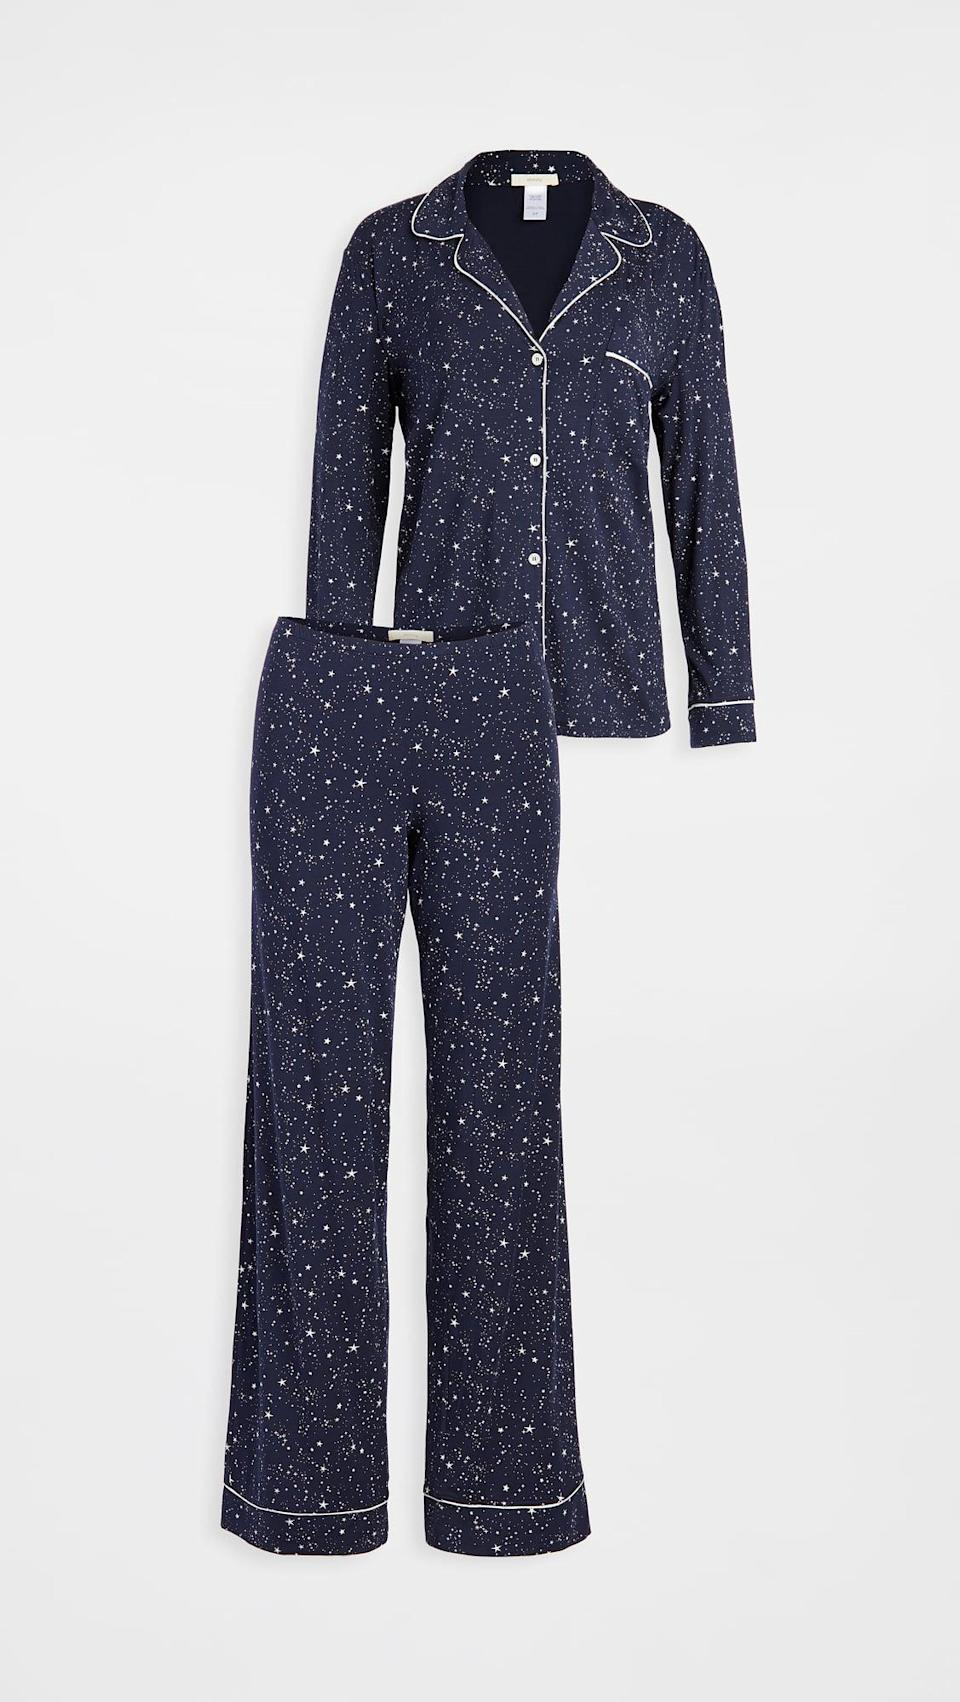 <p>Just because they like to lounge, doesn't mean they can't do it in style. This <span>Eberjey Gisele Printed The Long PJ Set</span> ($139) is cozy and cute.</p>